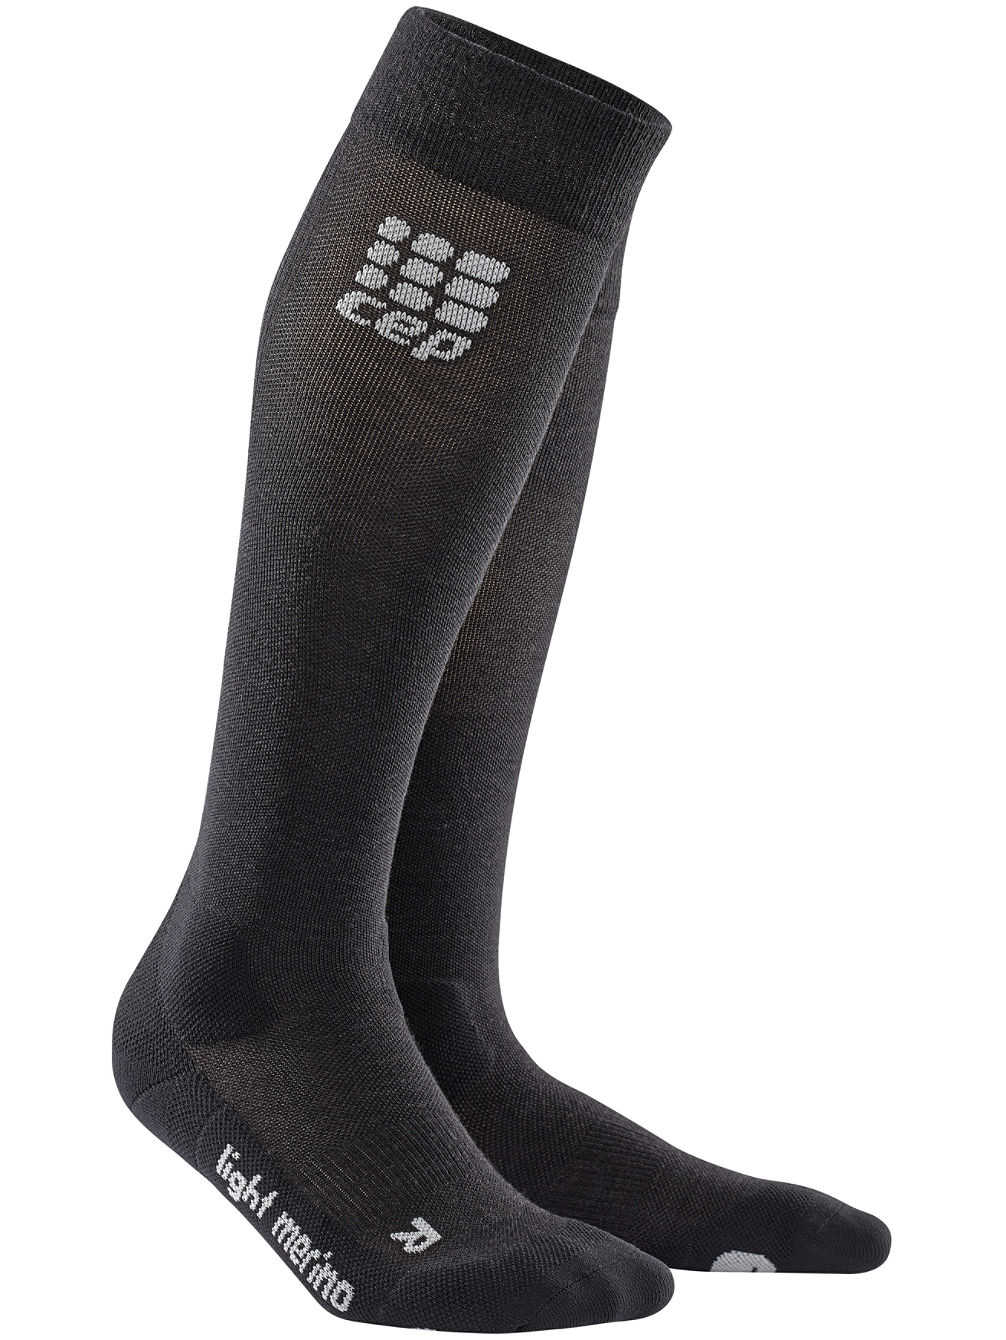 Outdoor Light Merino Socks